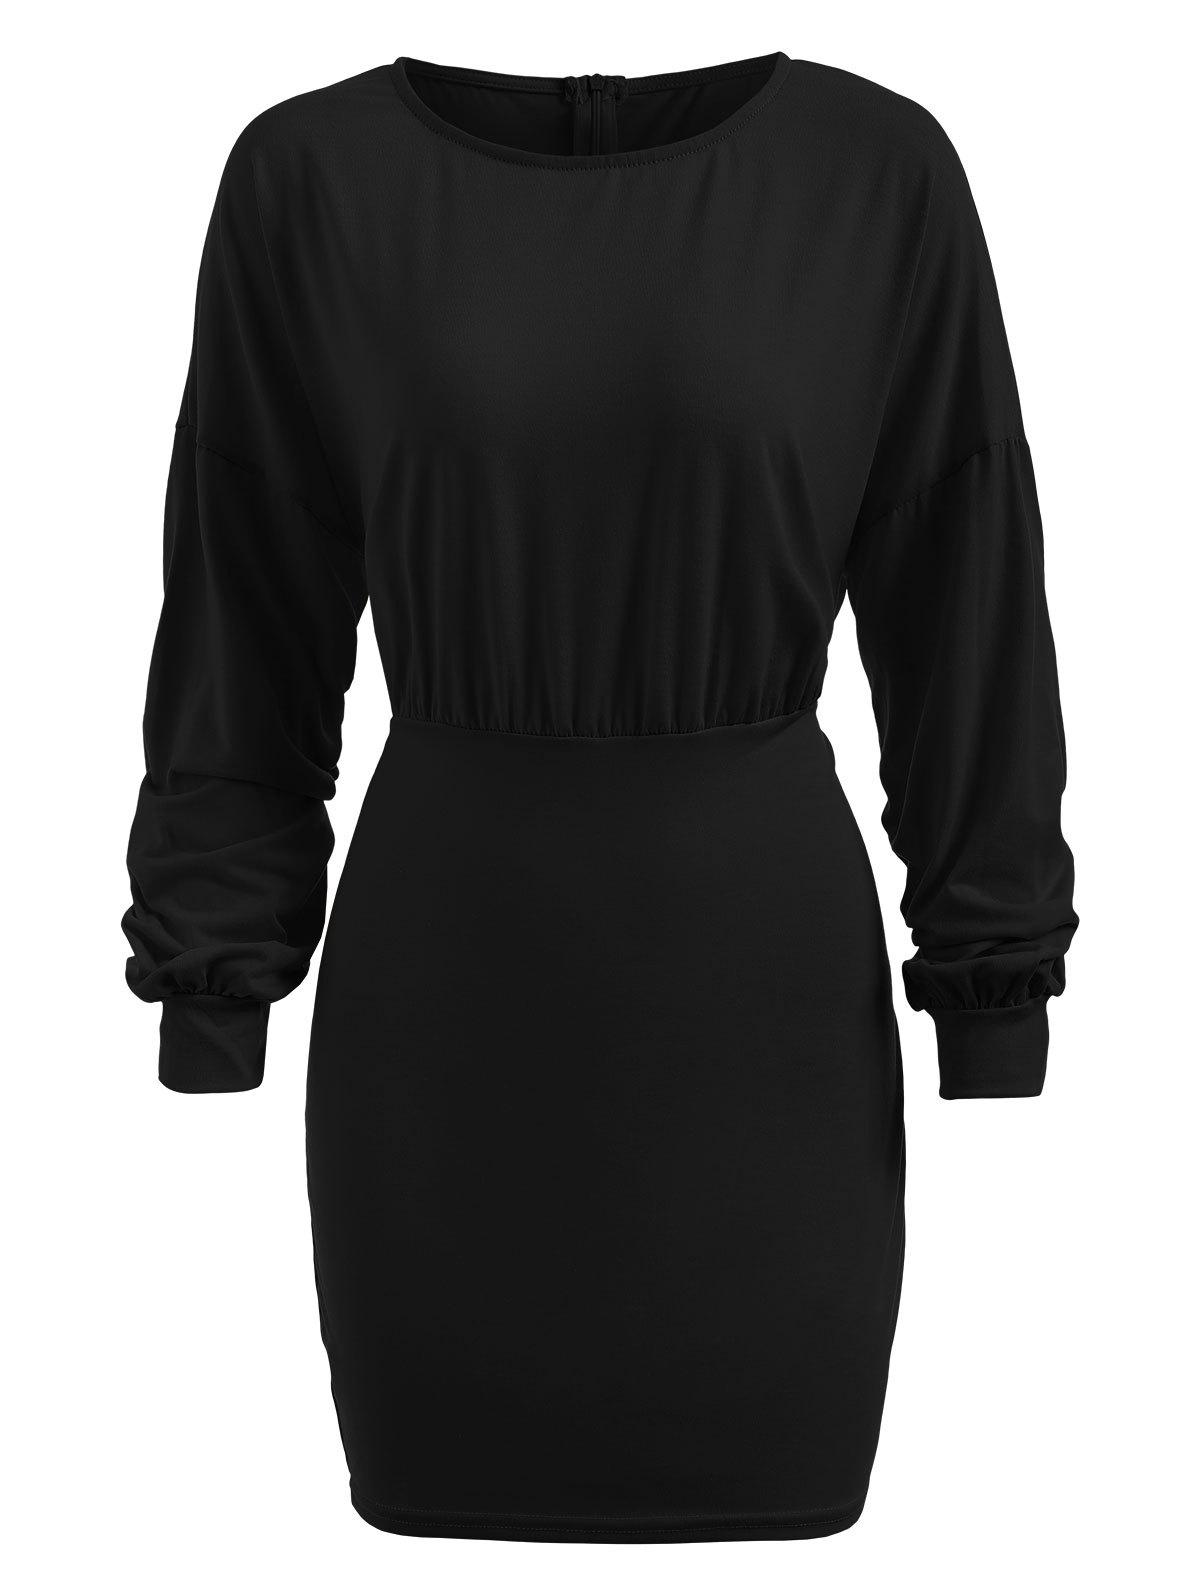 Shops Empire Waist Knitted Bodycon Dress